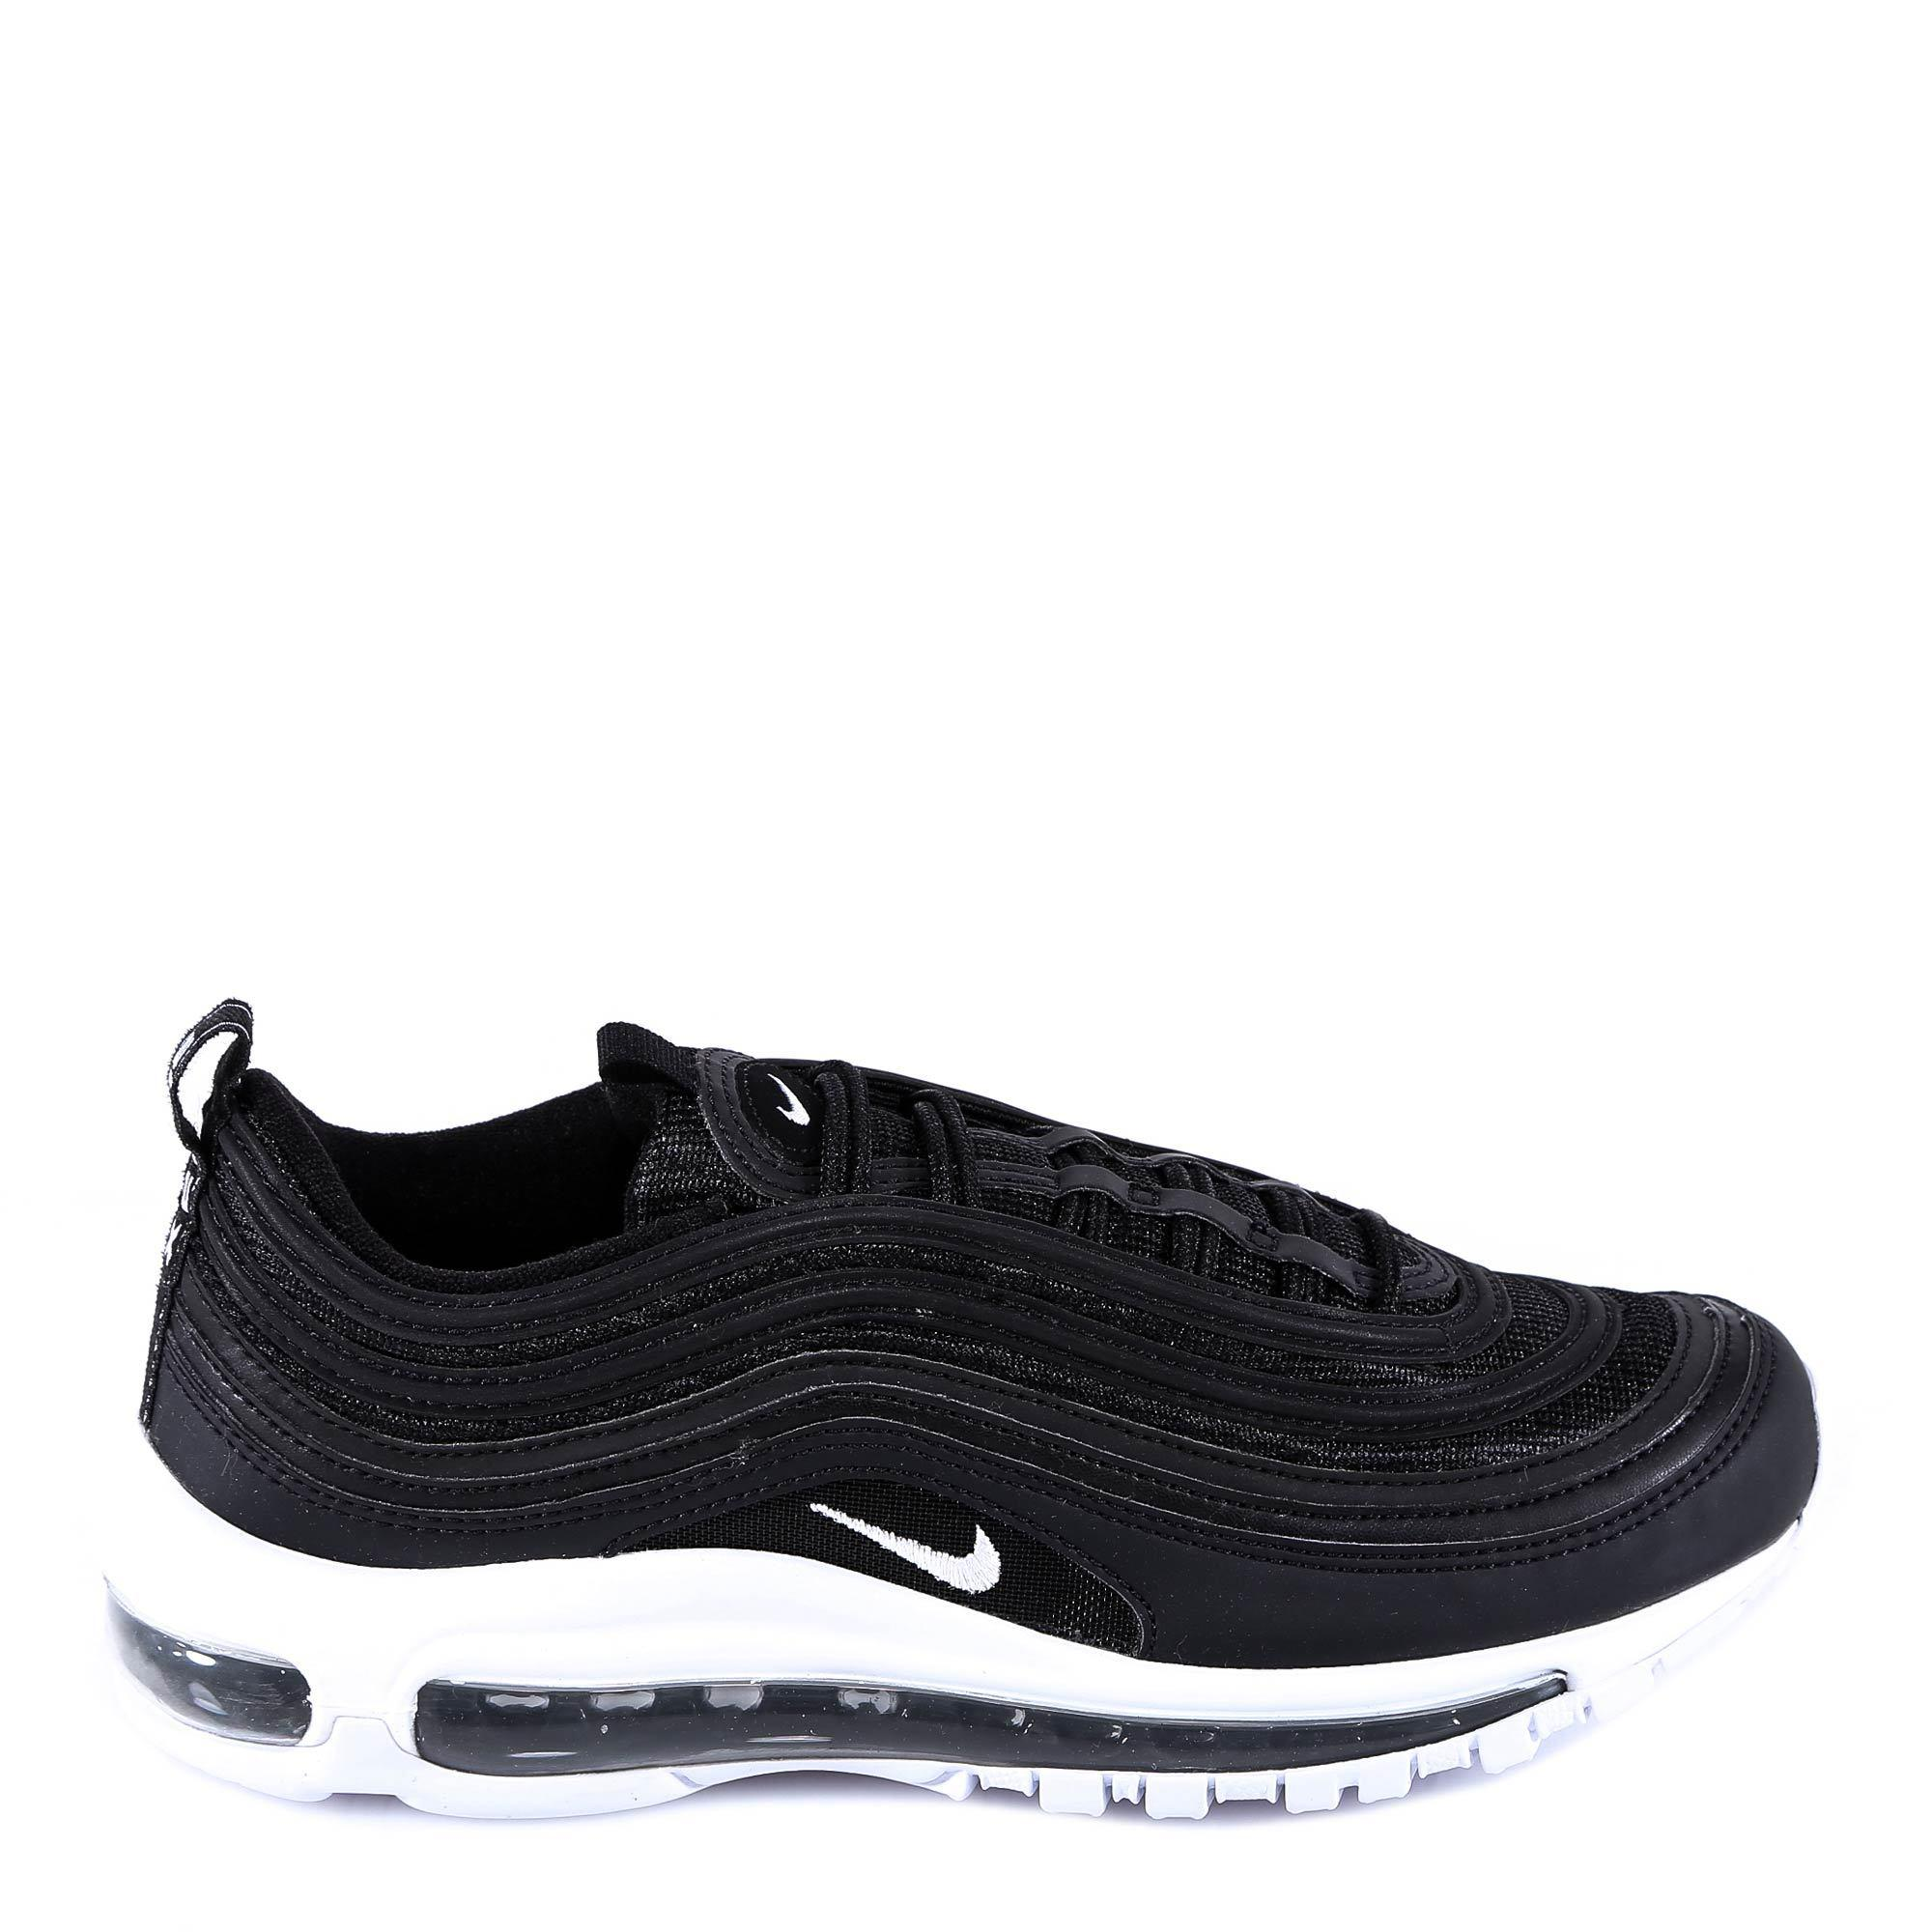 Nike Air Max 97 Sneakers in Black for Men - Lyst 6438becf6